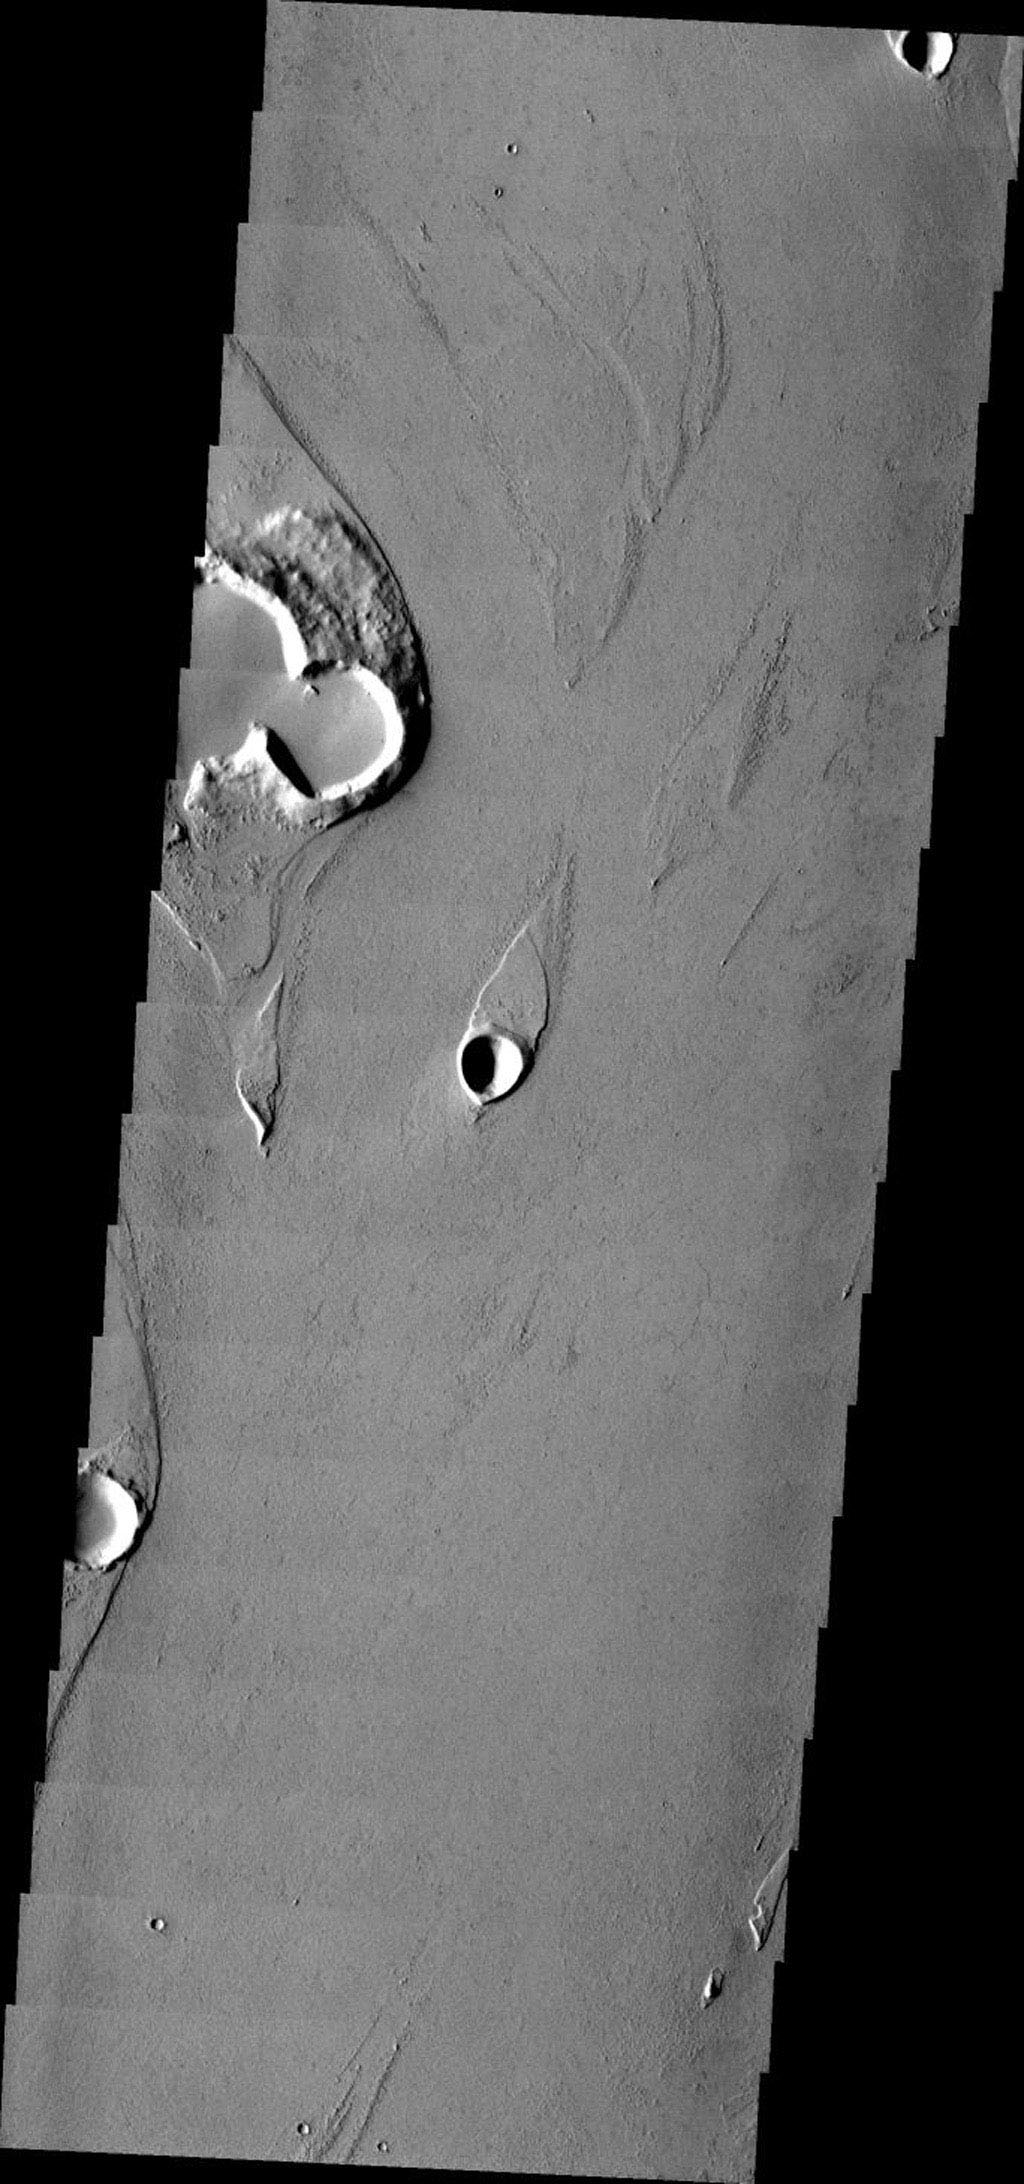 This image from NASA's Mars Odyssey shows Marte Vallis, a large, complex lava channel on Mars. The lava is able to create features, such as streamlined islands, that are more commonly seen in water carved channels.